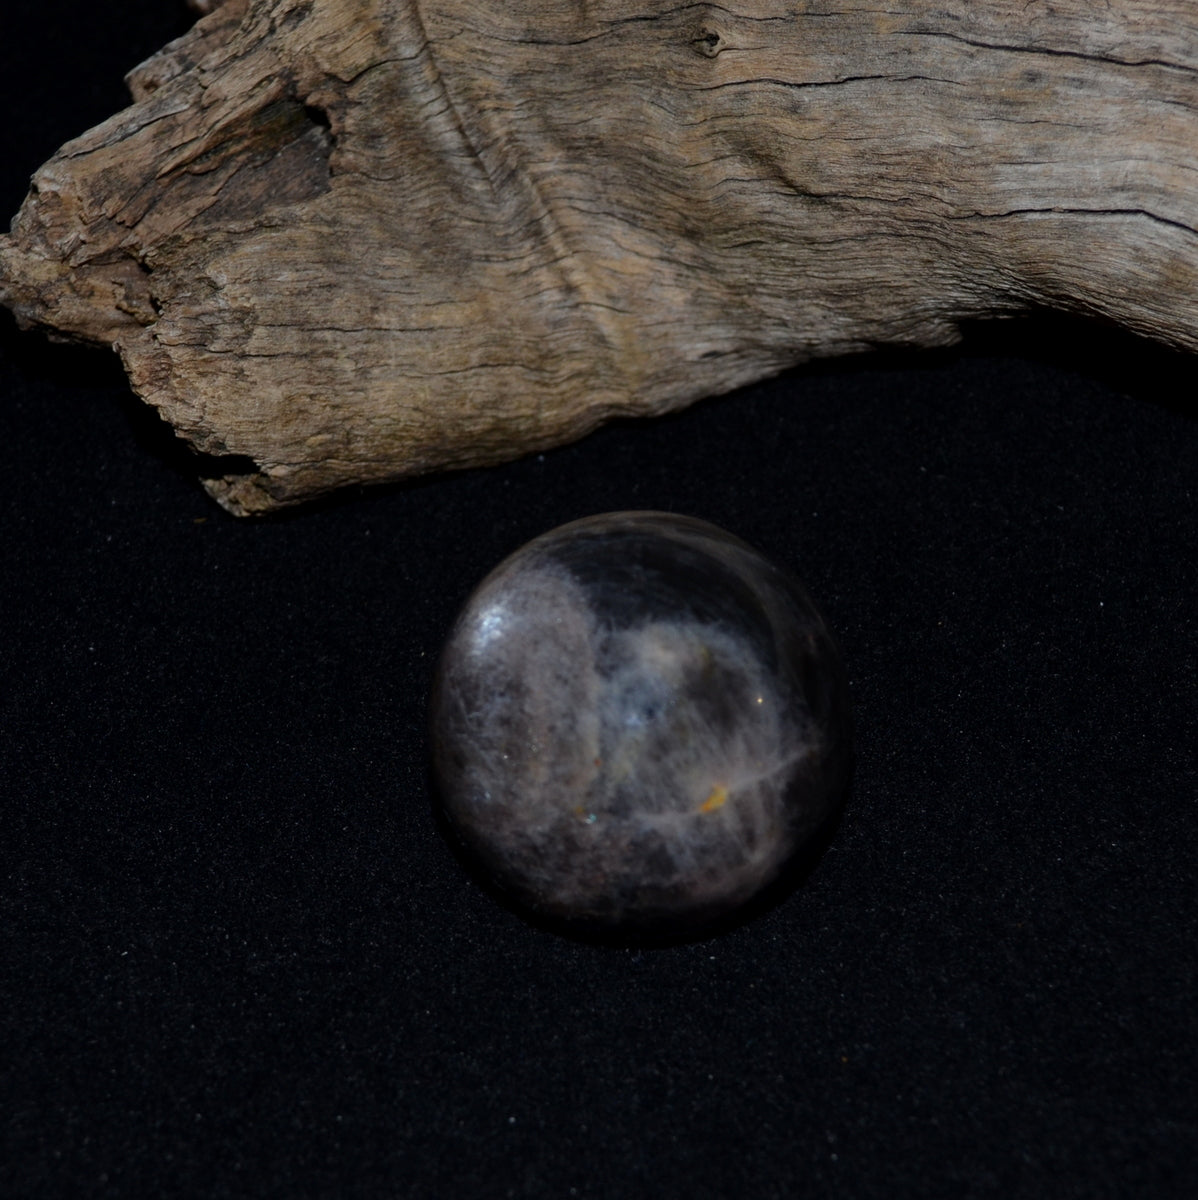 Black Moonstone Sphere - Wisdom Feminine Intuition - Shop Now at Illiom Crystals - Afterpay Available